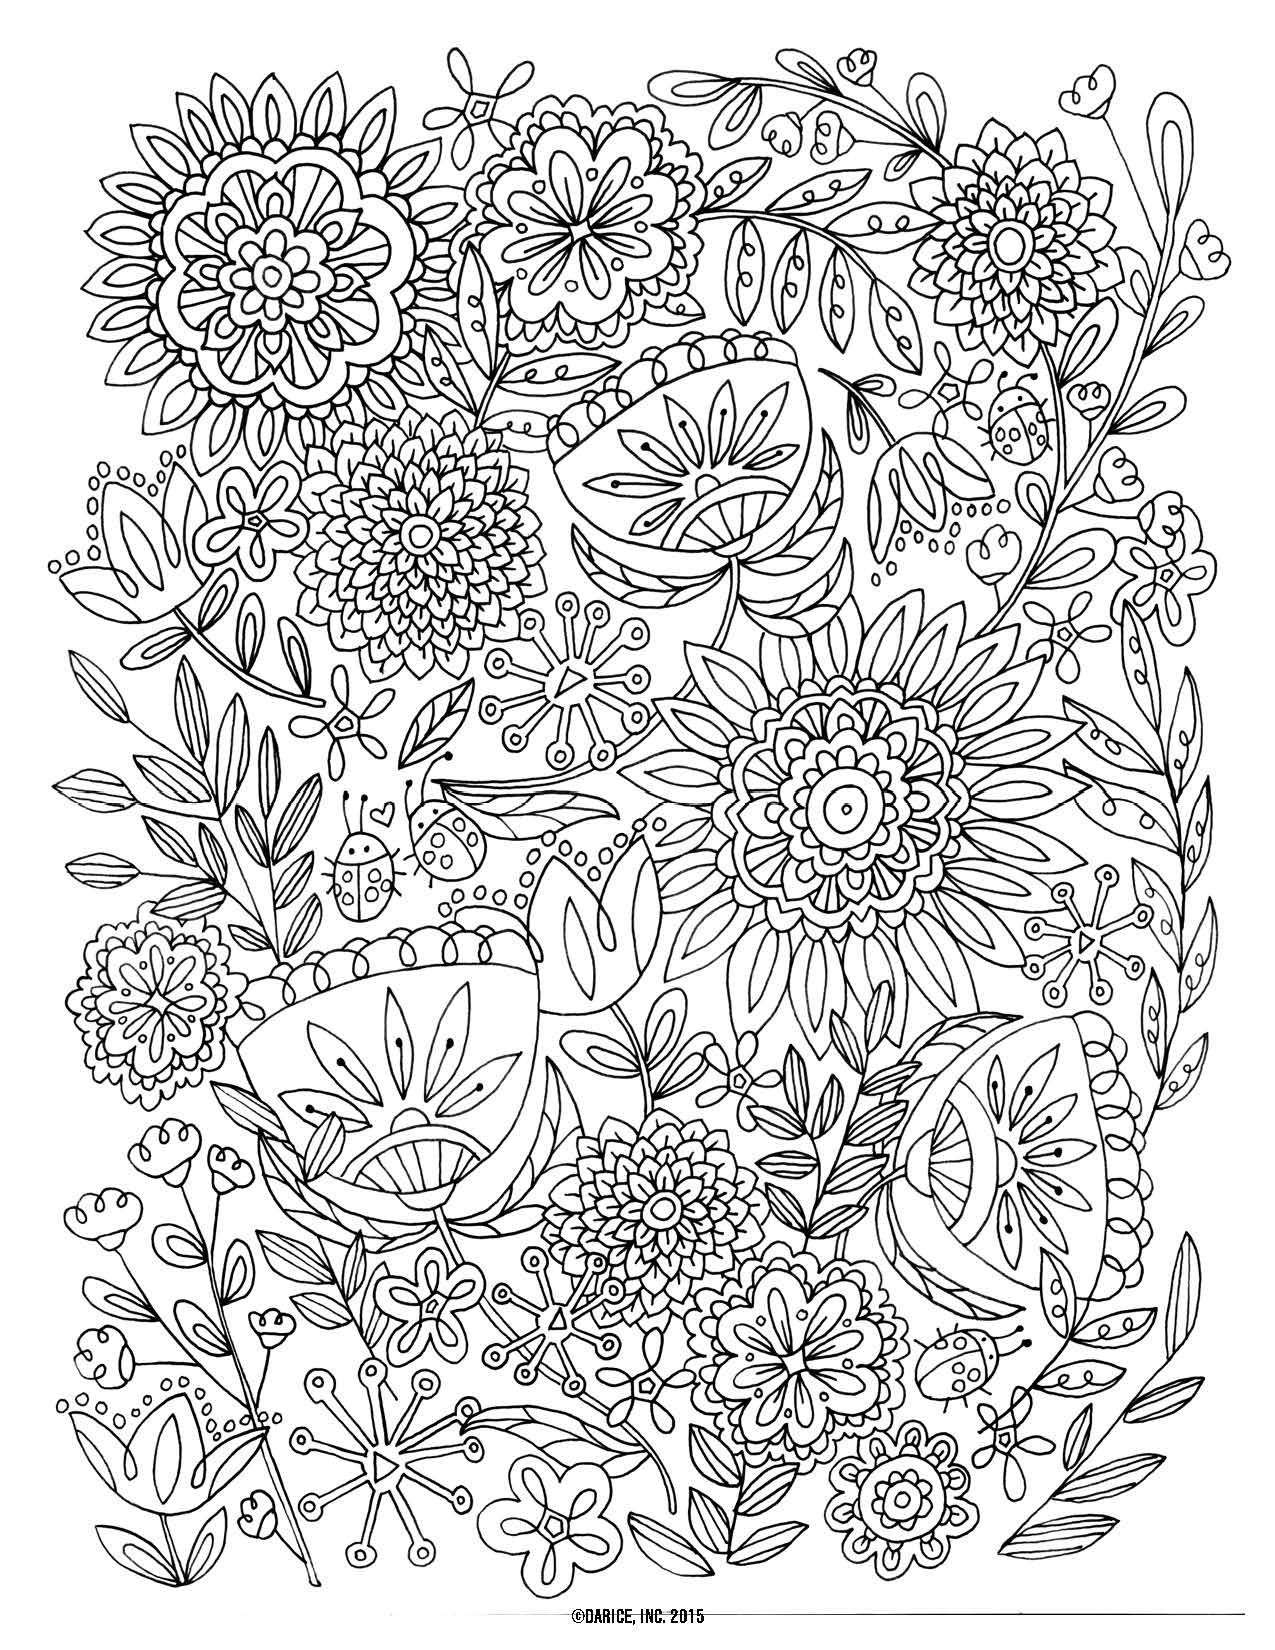 Printable Quilt Patterns Coloring Pages  Printable 10c - To print for your project